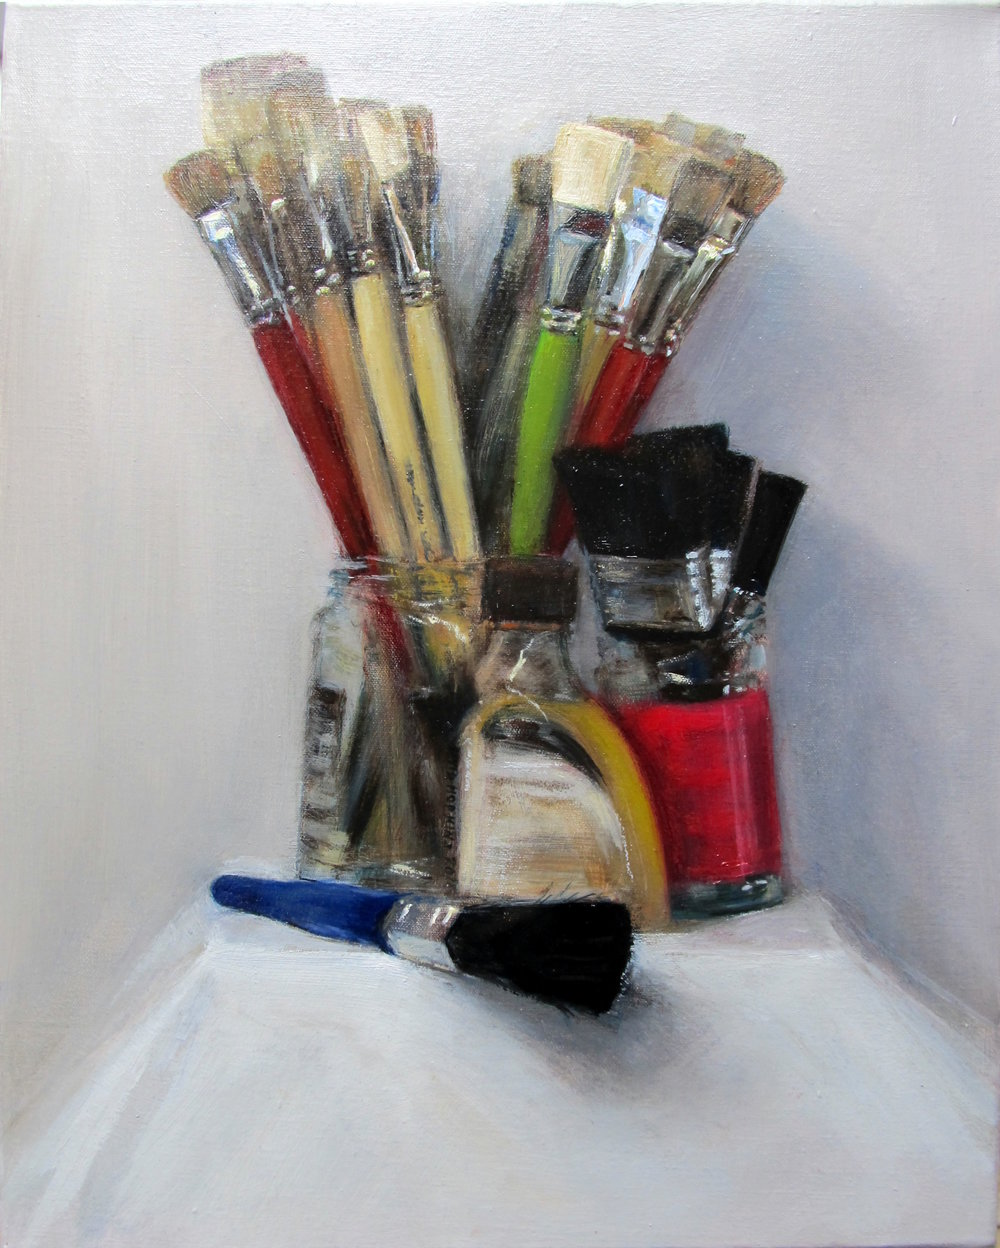 Brushes #2, 2016 Oil on canvas | 50 x 40 cm £450